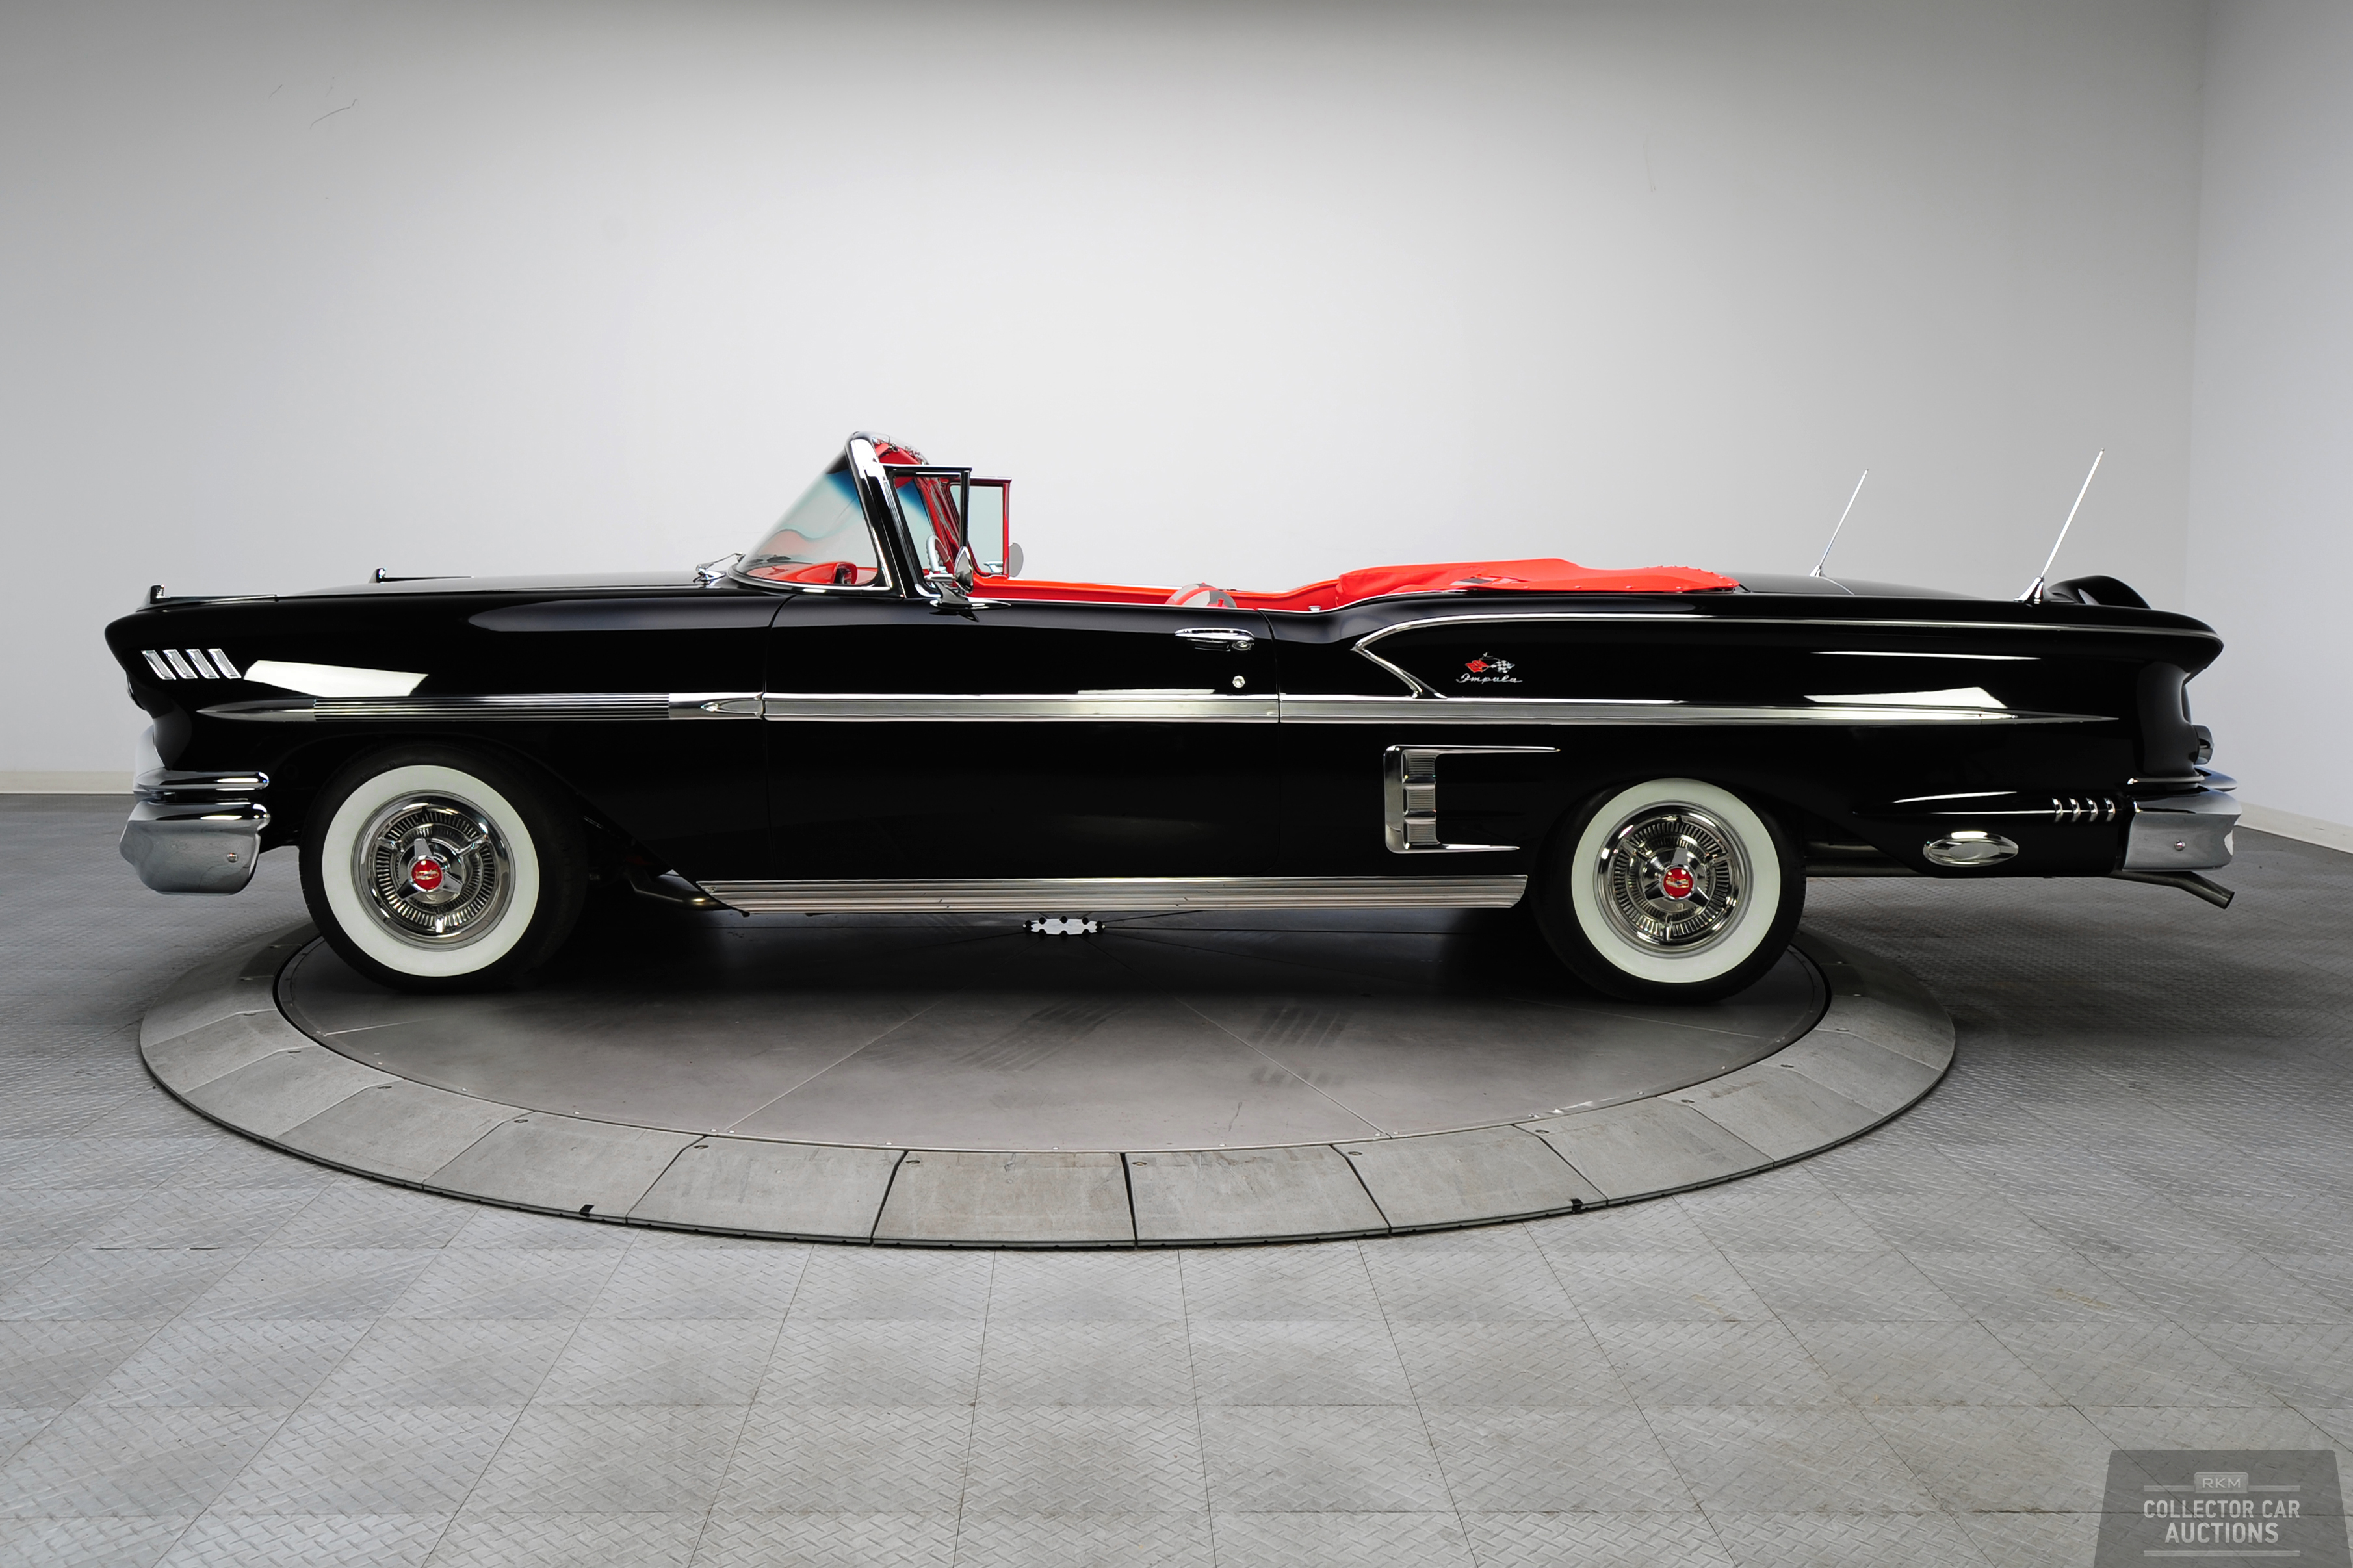 1958 chevrolet impala convertible 348 tri power classic cars t wallpaper 3620x2413 71637 wallpaperup